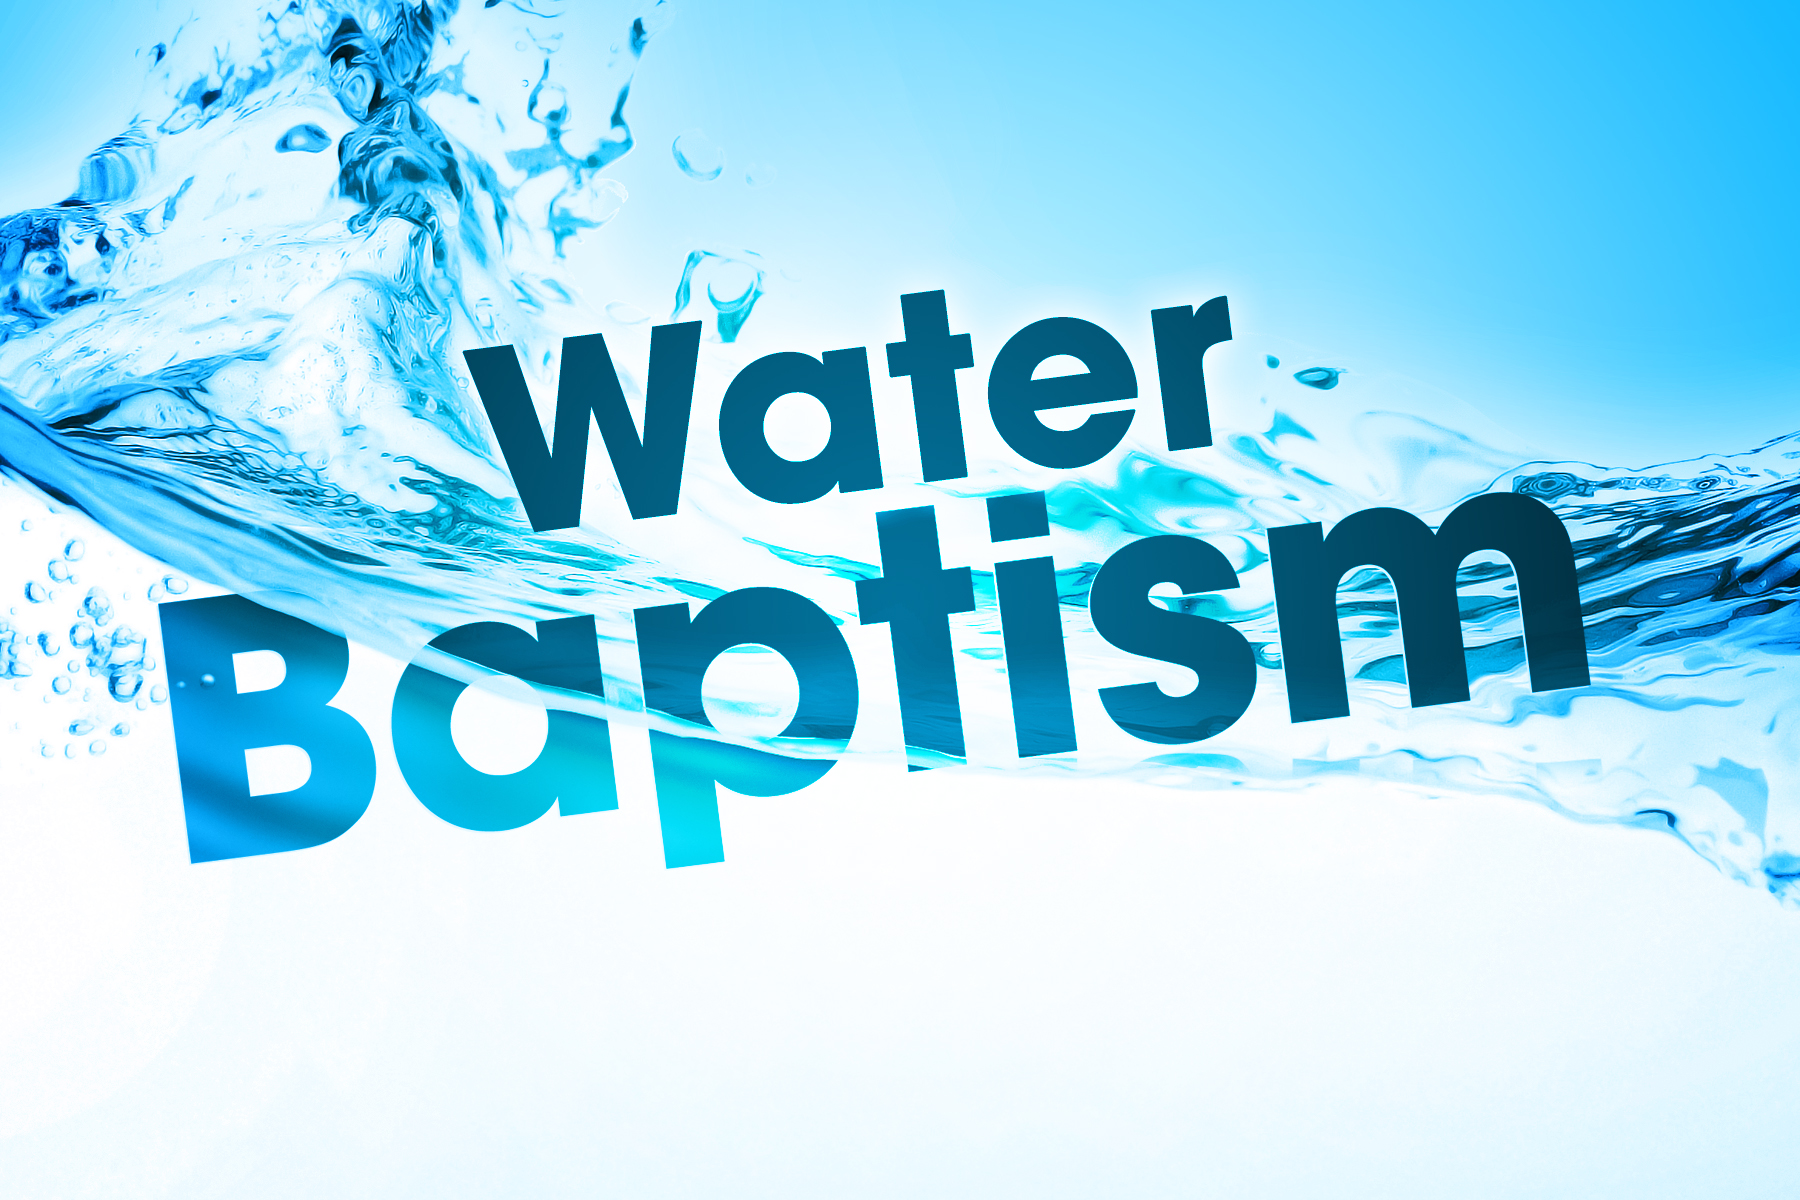 water baptism Water baptism baptism is an outward declaration of an inward choice someone makes when they accept jesus christ as their personal savior and lord it is a symbol of having confessed their.